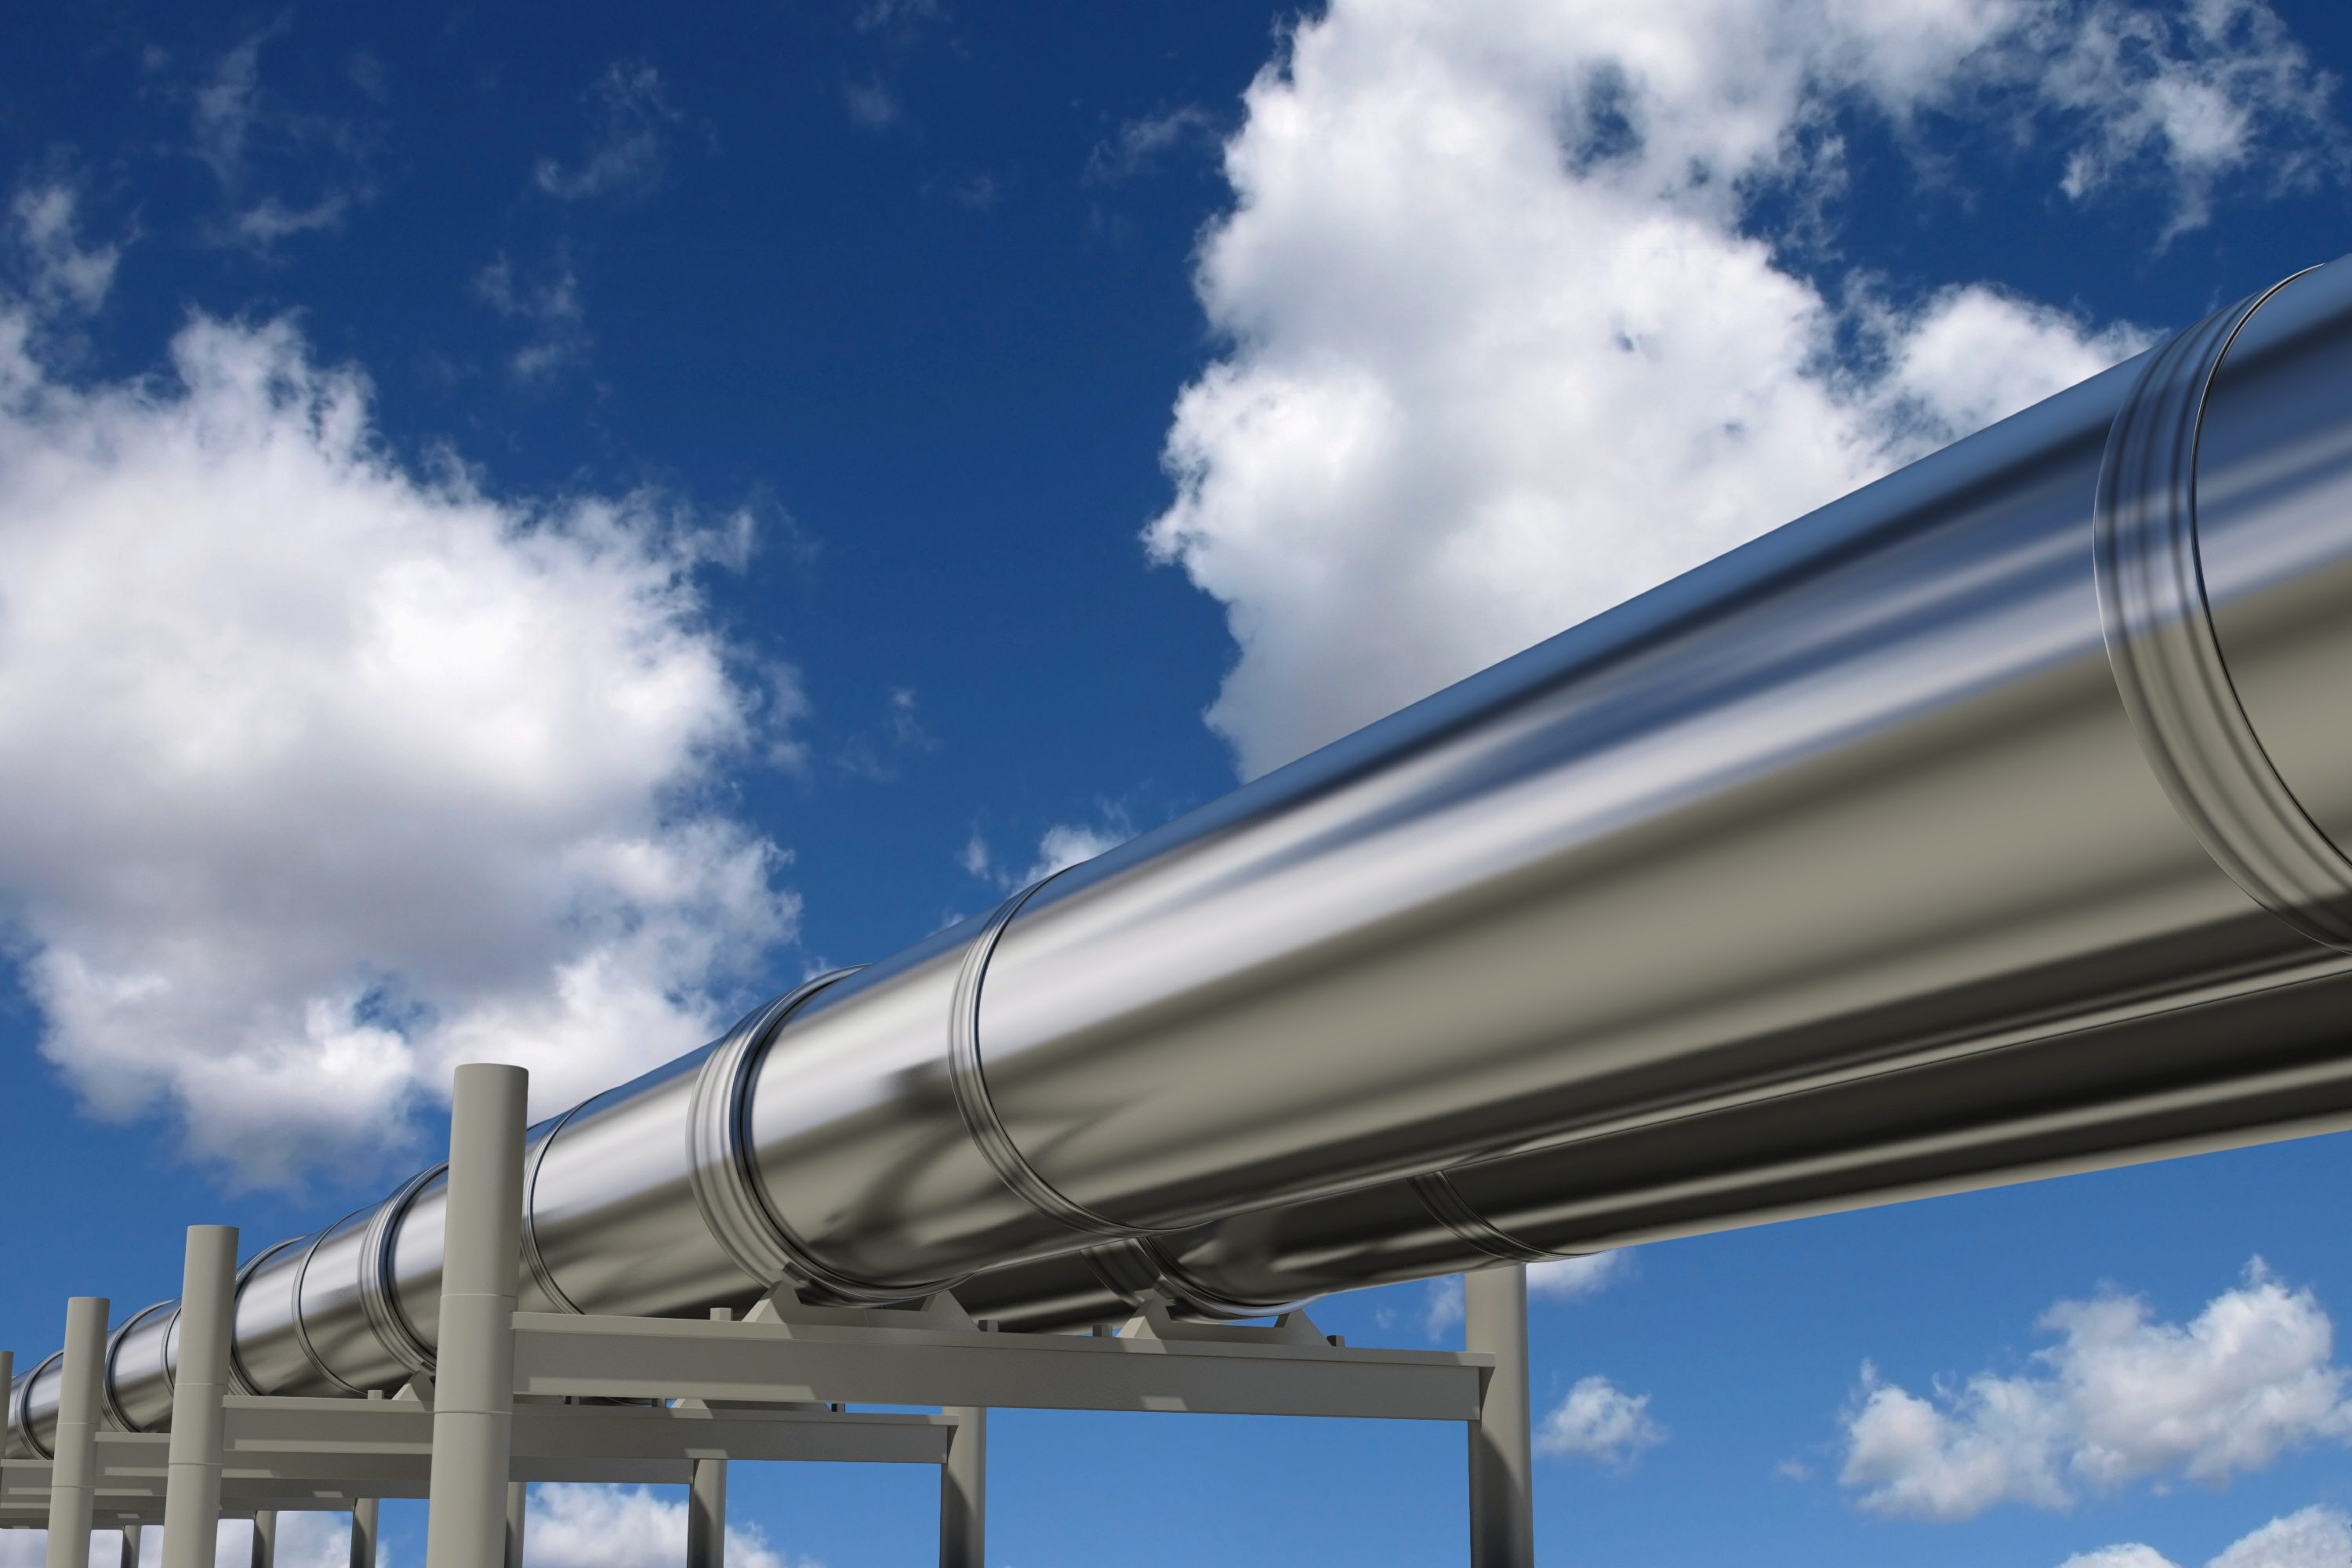 Keep energy flowing with safe, new pipeline infrastructure